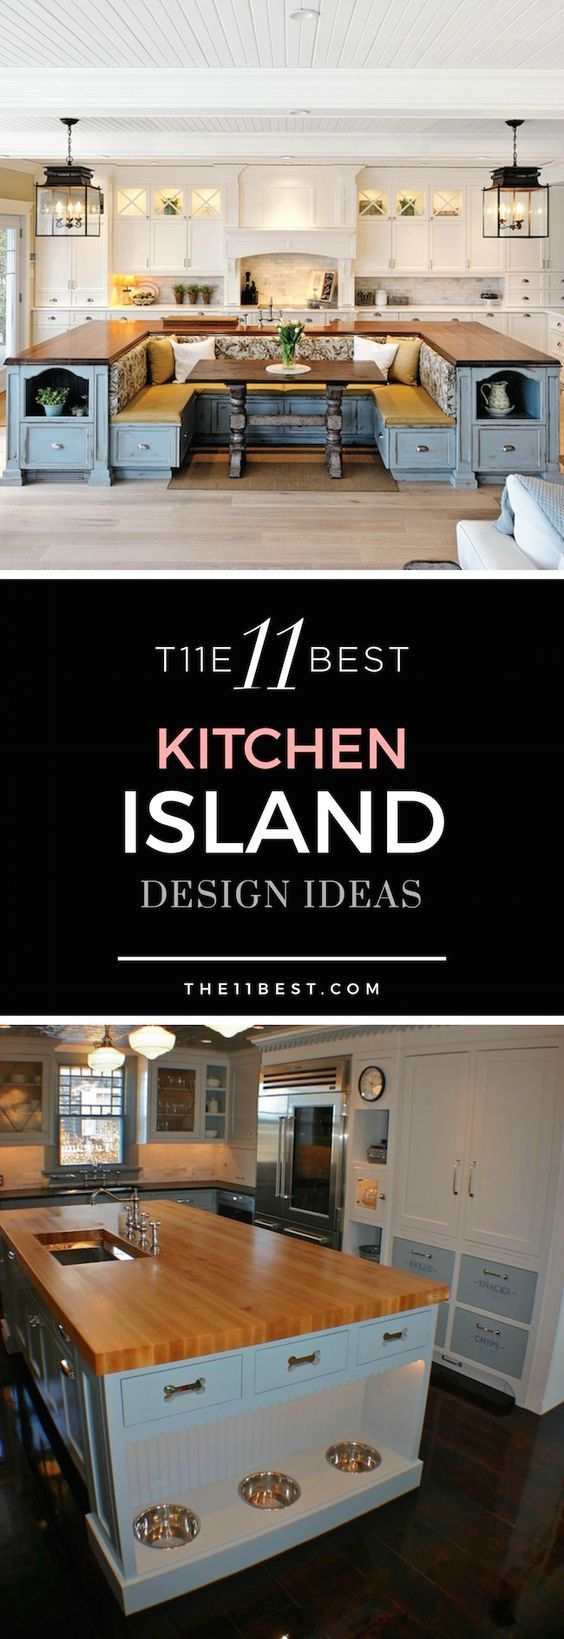 Wonder if my space is large enough for this? #LGLimitlessDesign #contest The 11 Best Kitchen Island Design Ideas for your home: